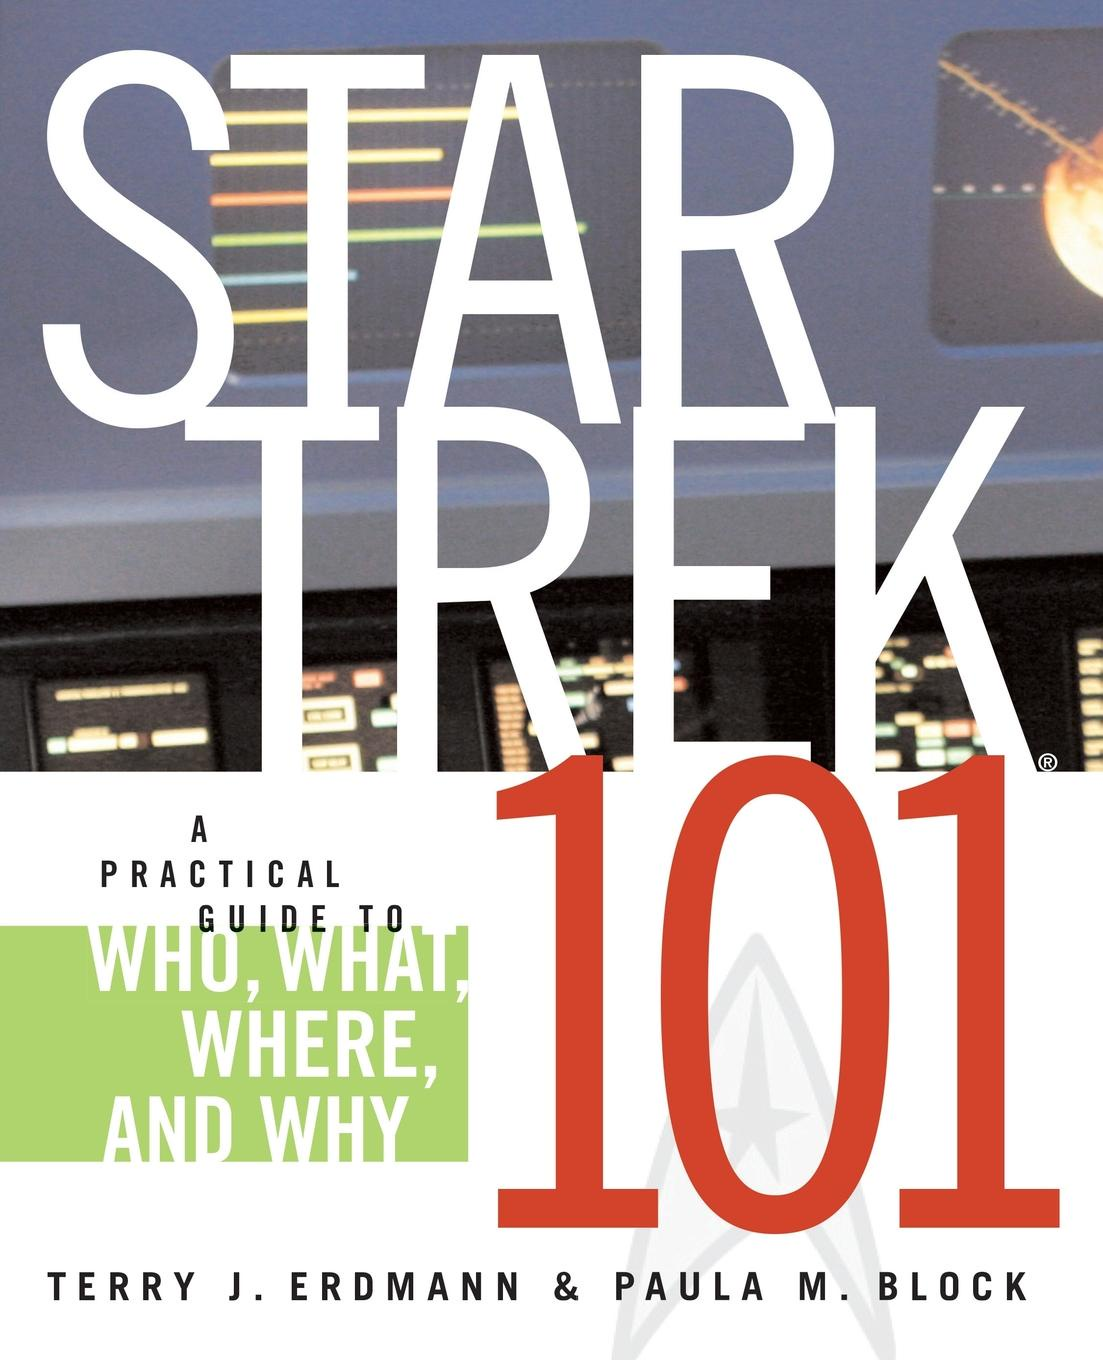 Terry J. Erdmann Star Trek 101. A Practical Guide to Who, What, Where, and Why elisa j kassin star trek strange new worlds vii